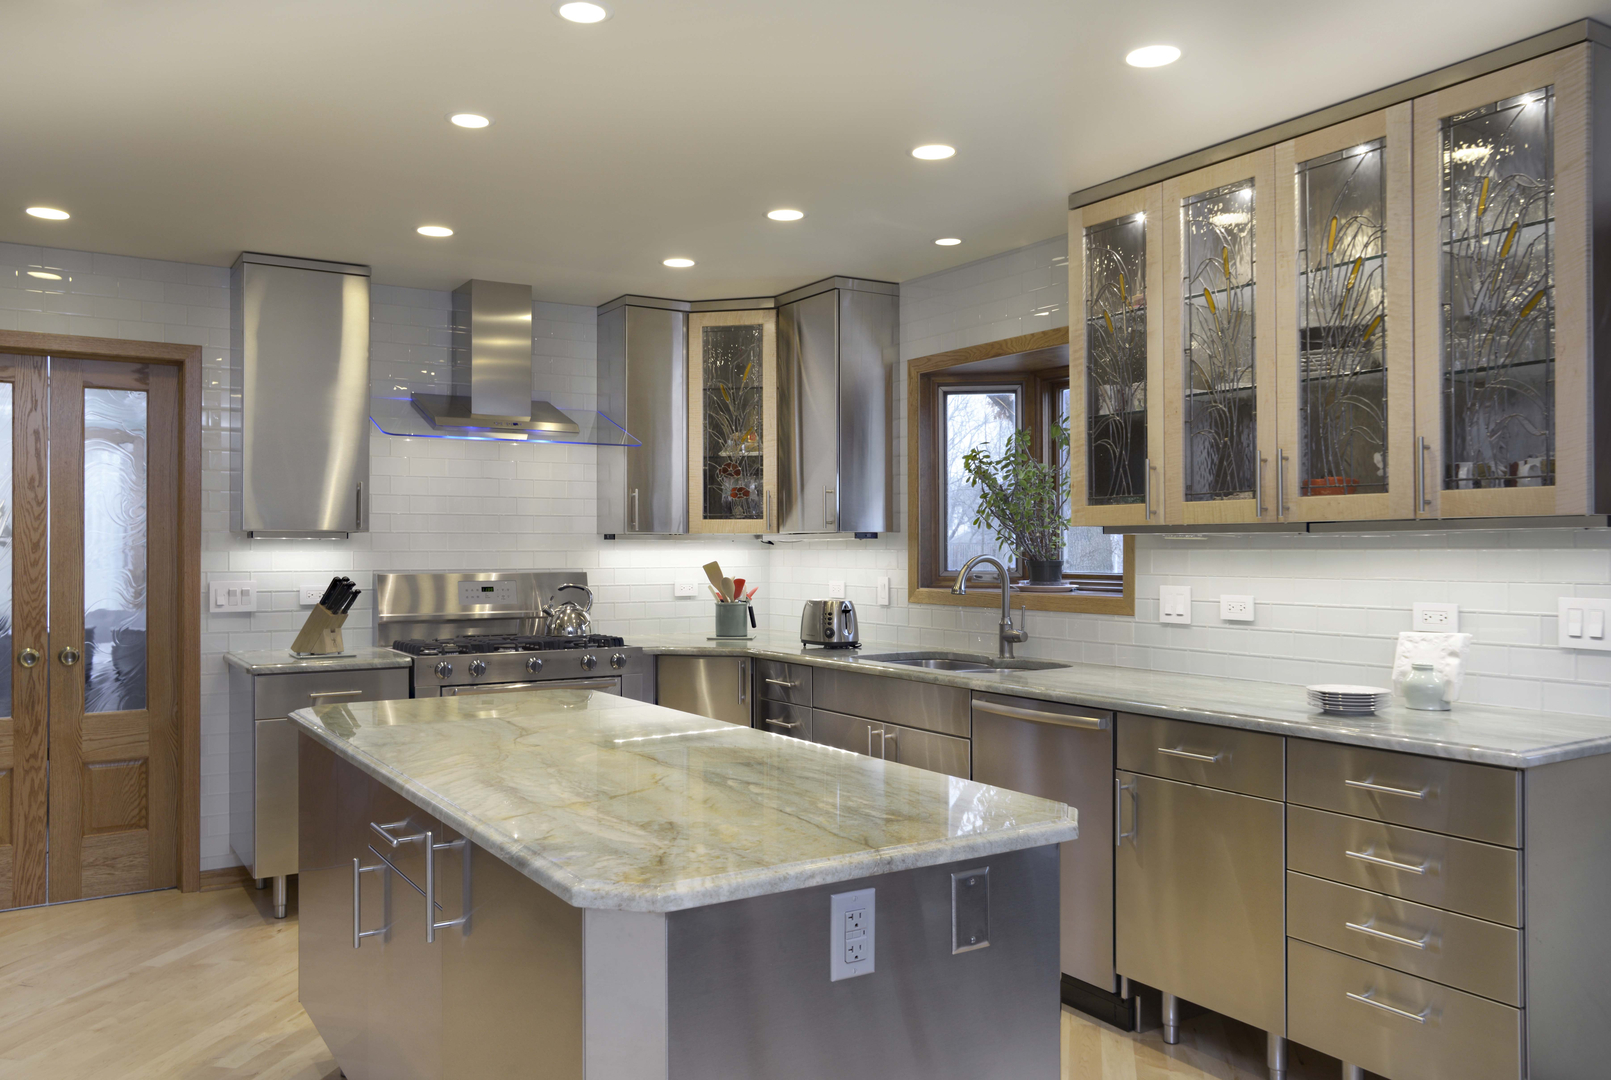 Stainless Steel Kitchens Stainless Steel Kitchens  Stainless Steel Kitchen Cabinets